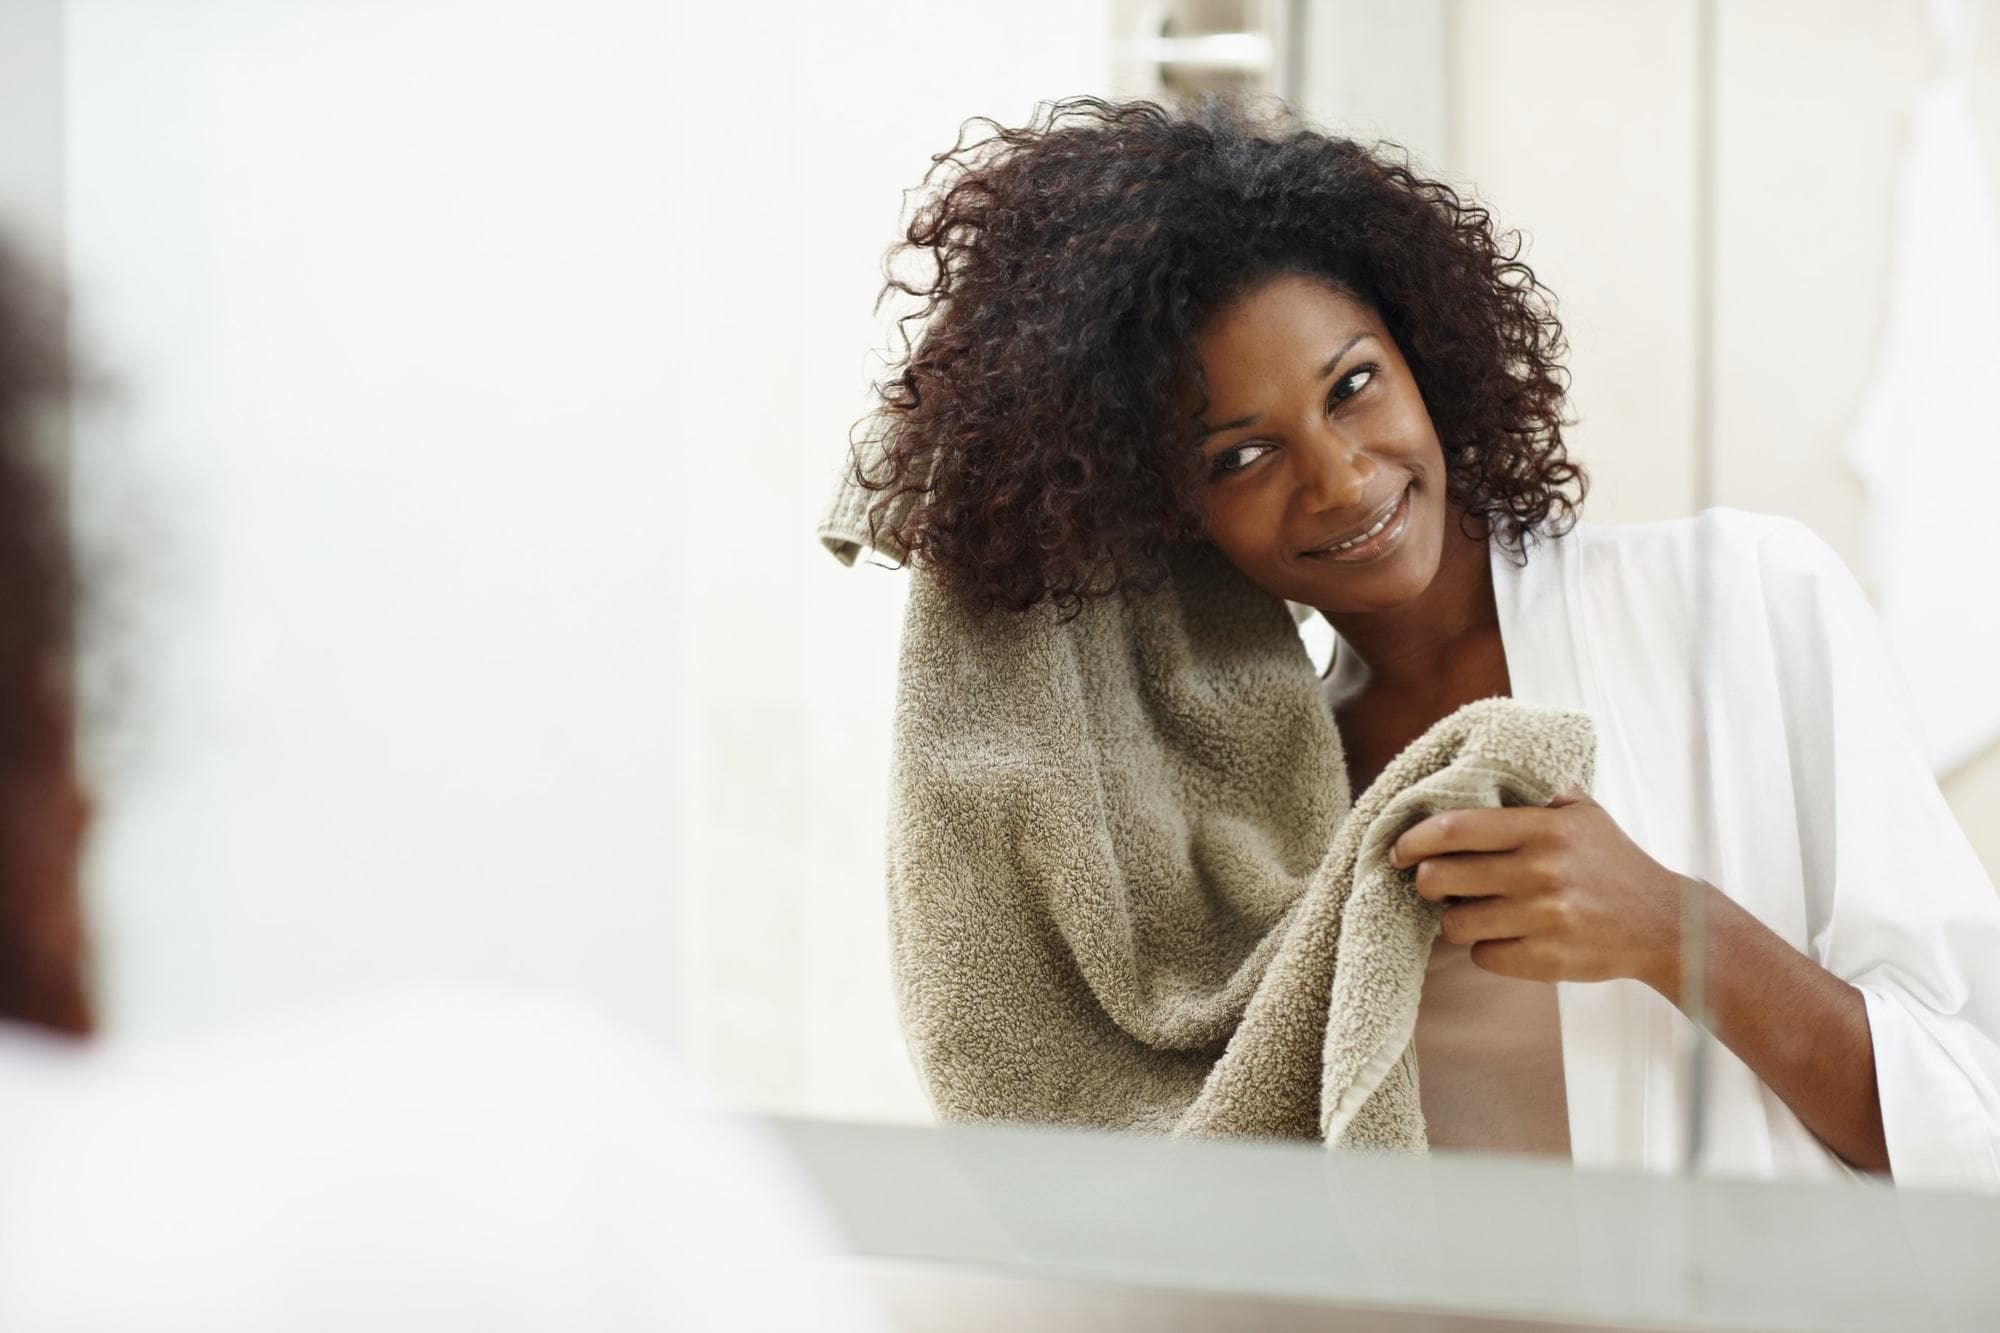 black woman with afro hair towel drying her hair in the mirror